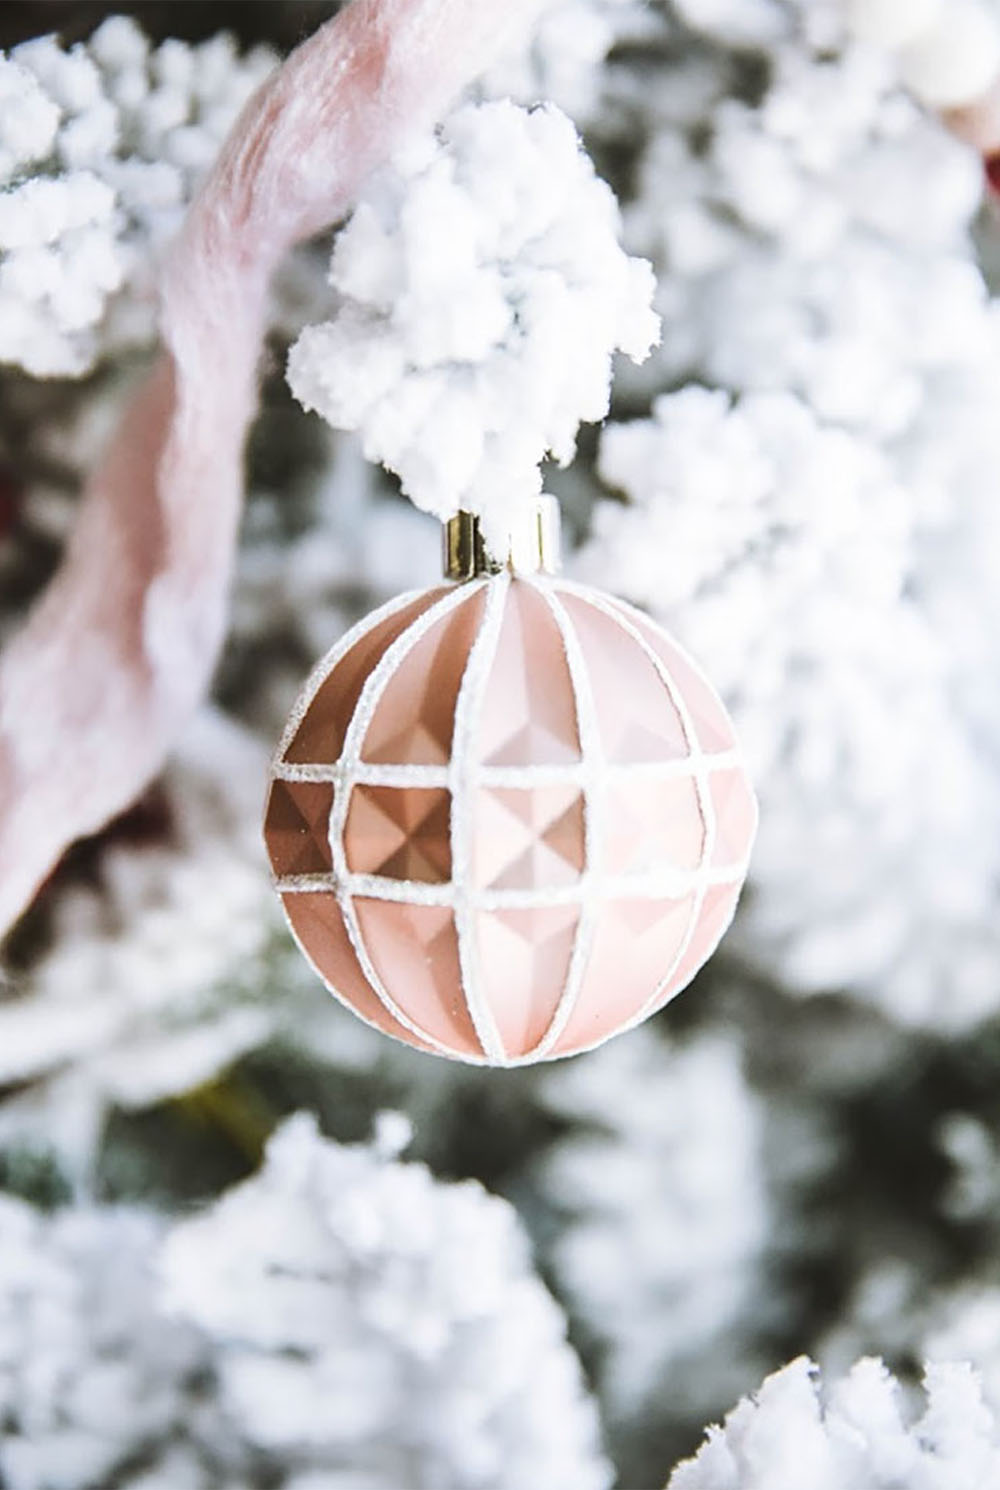 A pink ornament with with detail hangs on a flocked Christmas tree branch.